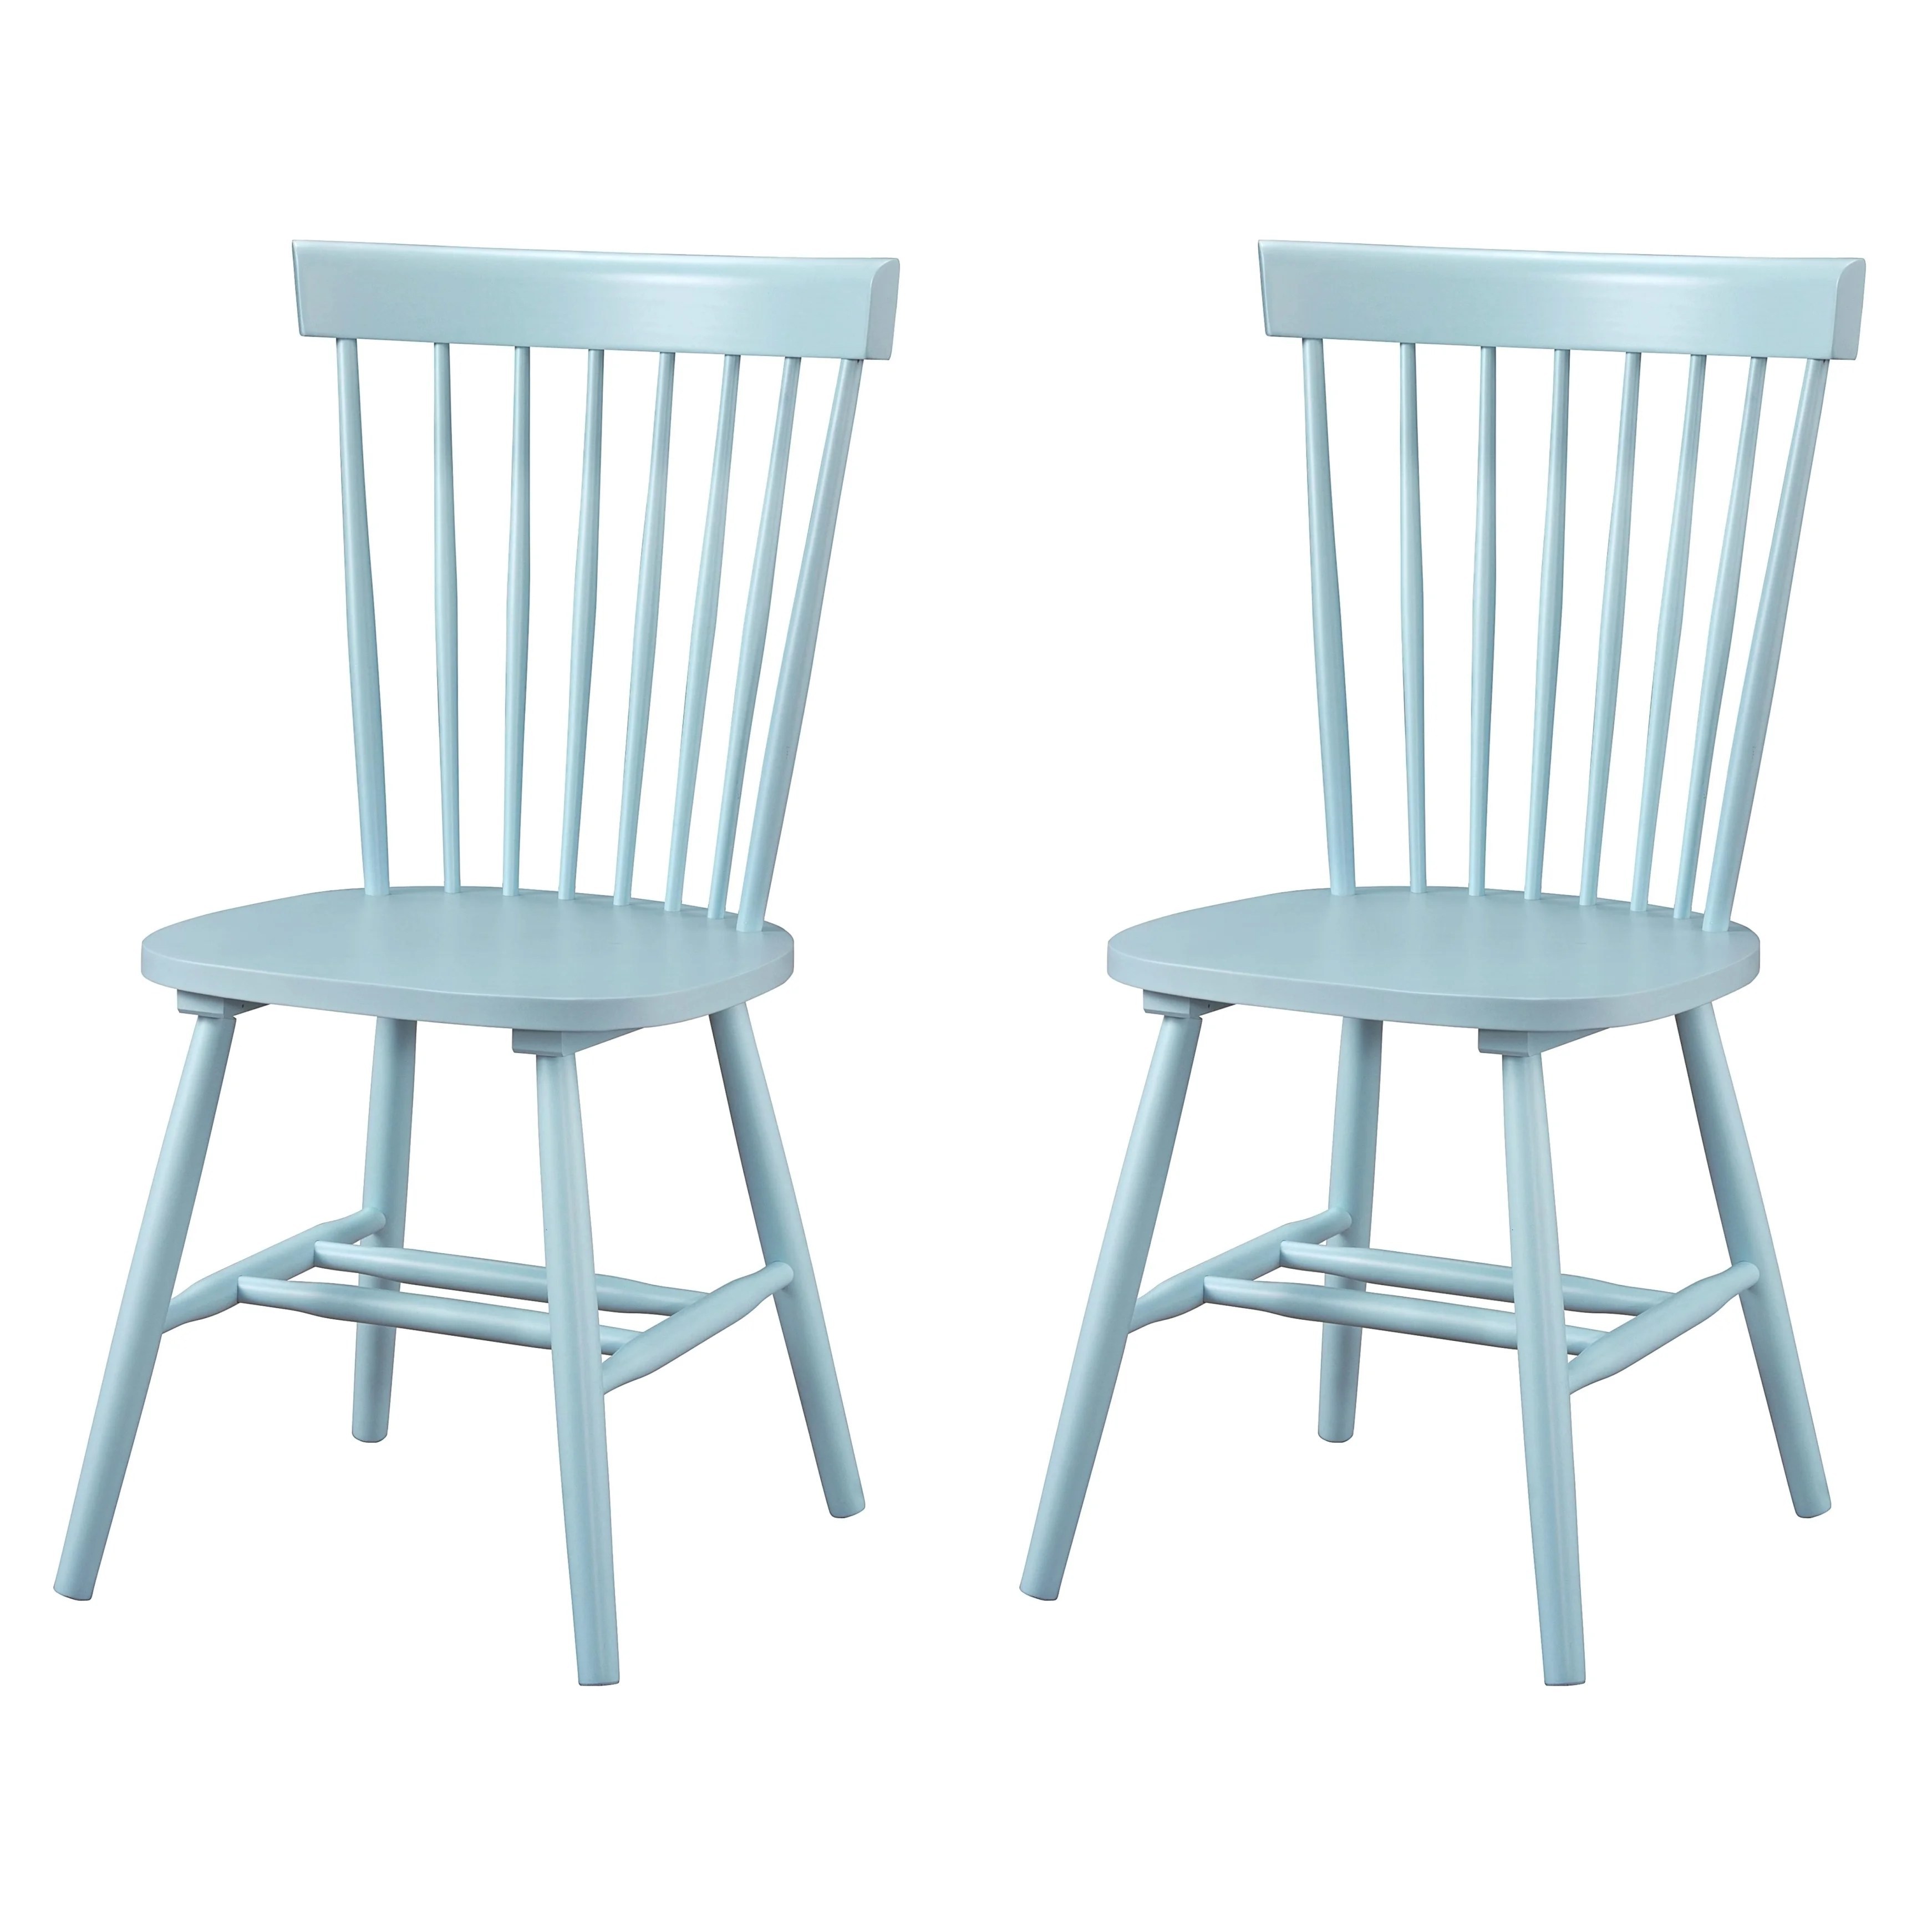 Dunner Danish Design Spindle Back Light Blue Dining Chairs Set Of 2 Overstock 10650180